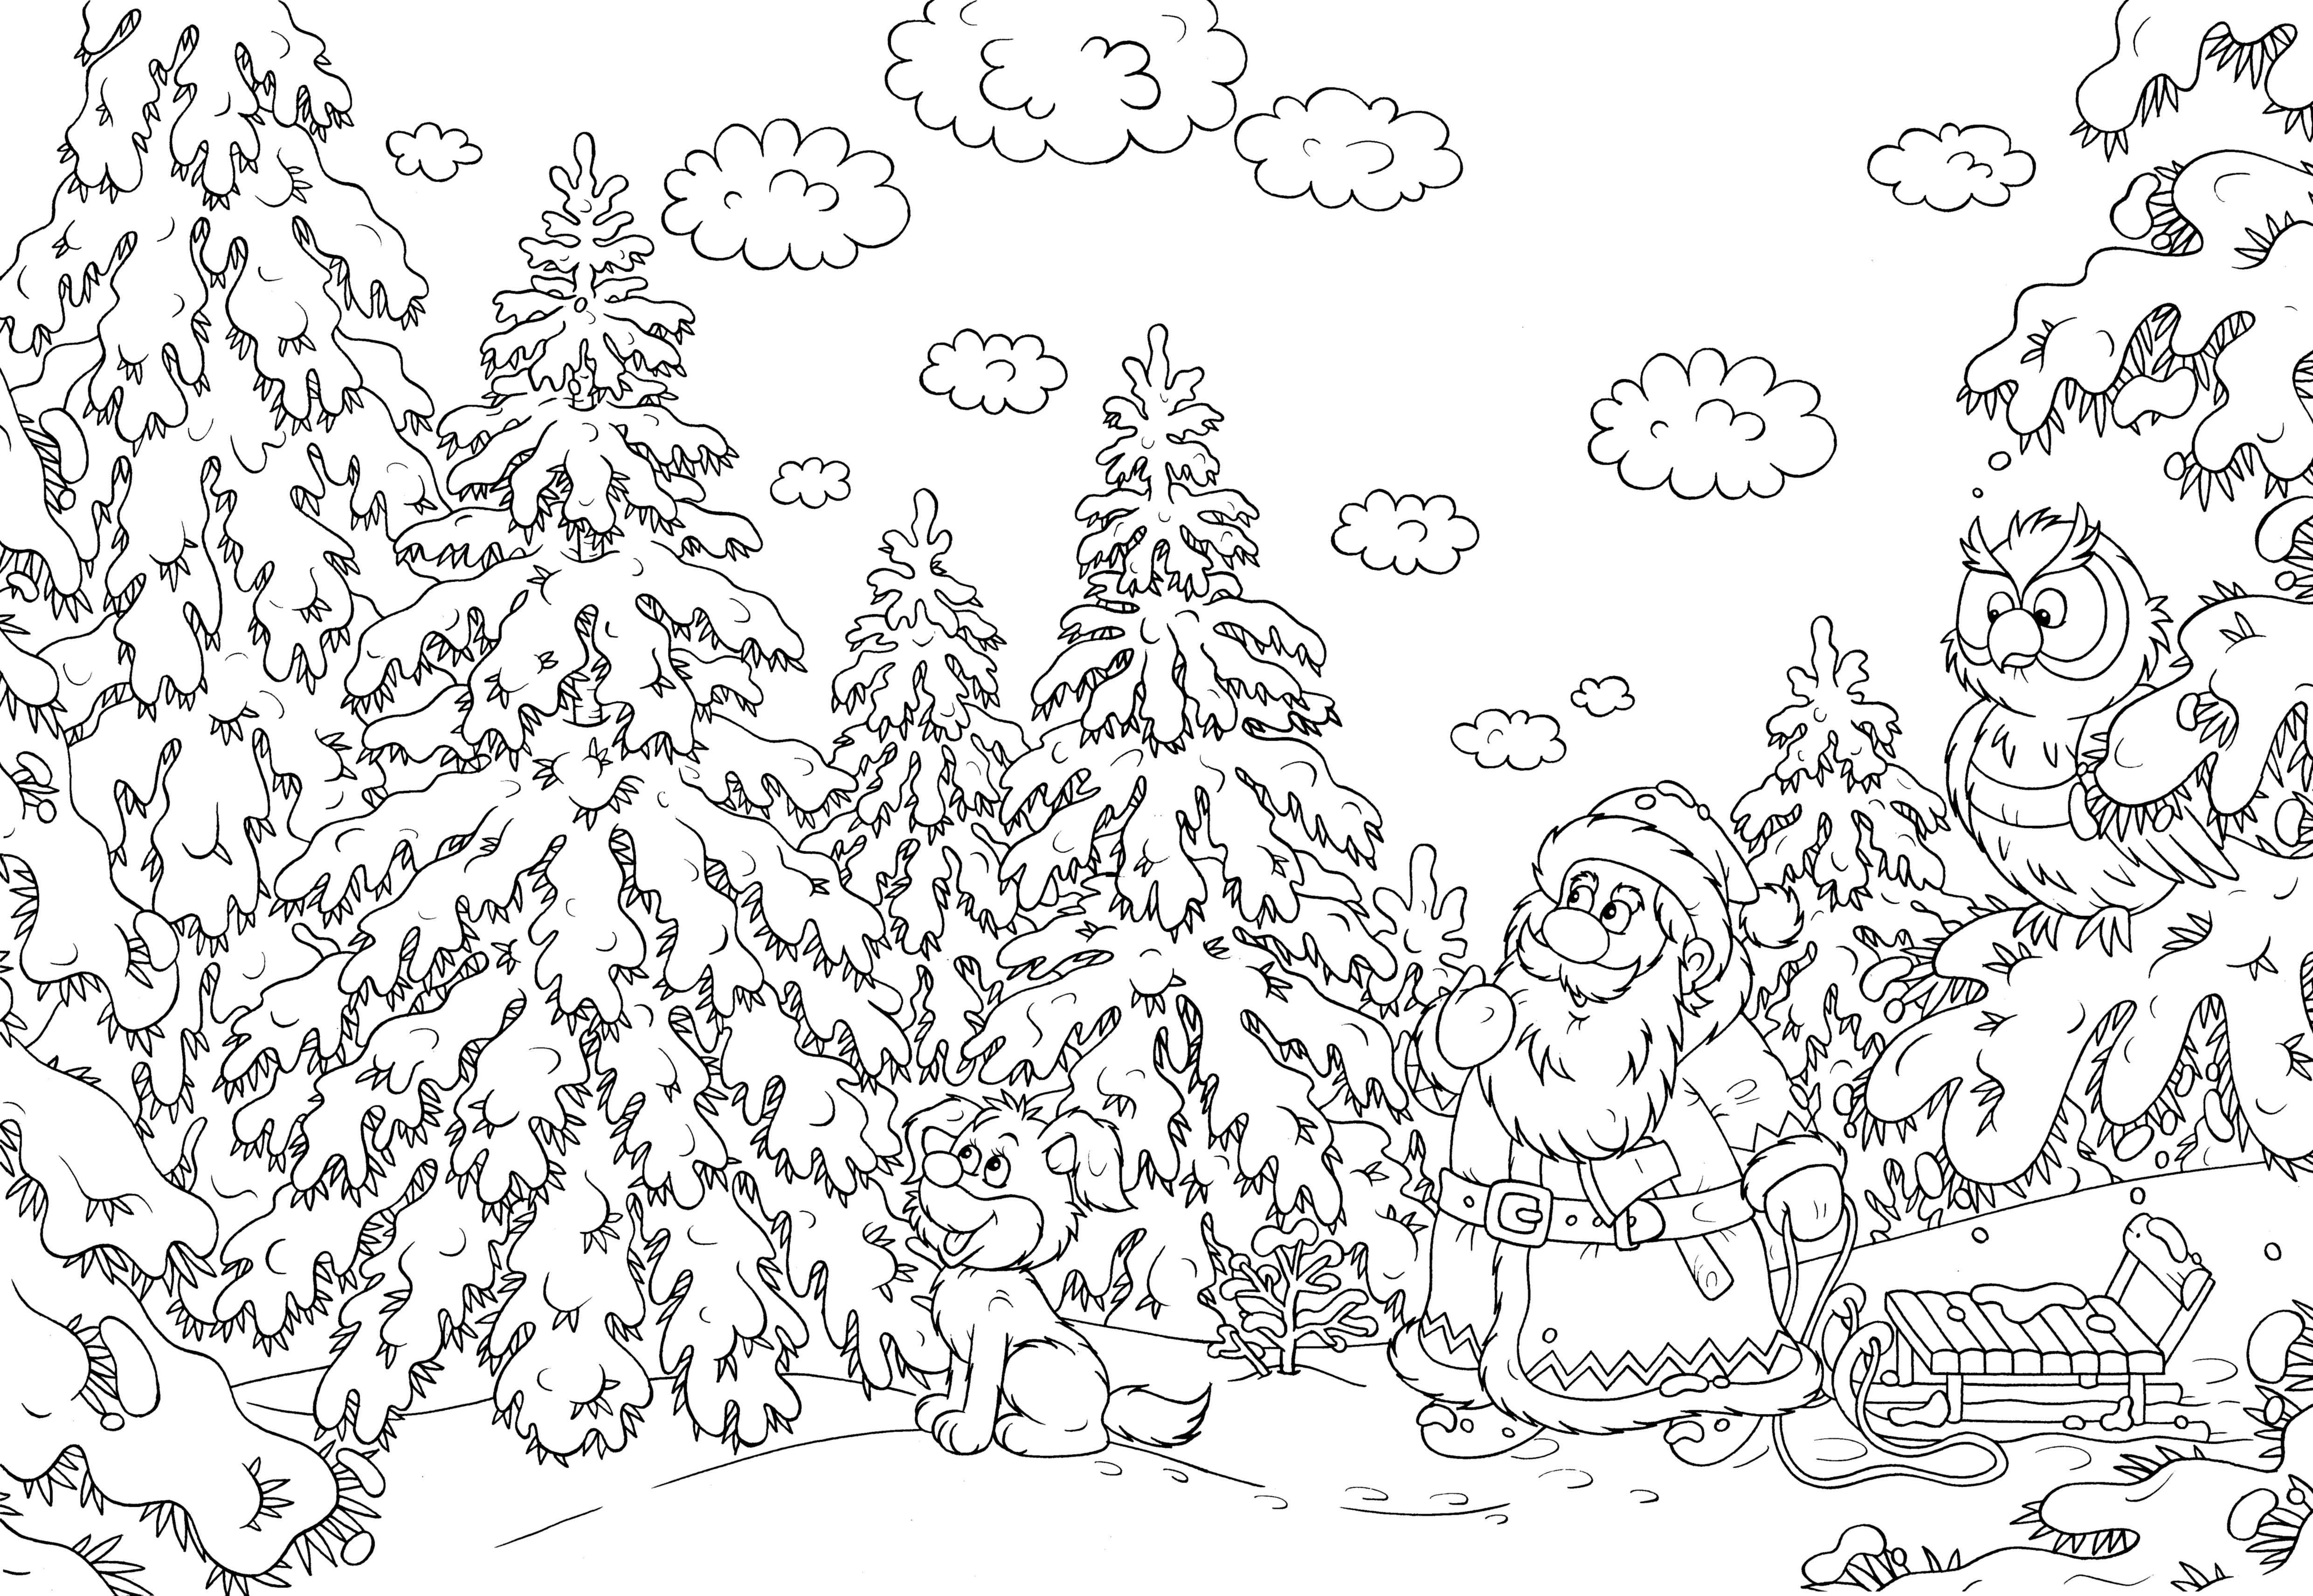 Christmas Coloring Pages Free And Printable With Difficult For Adults Gallery